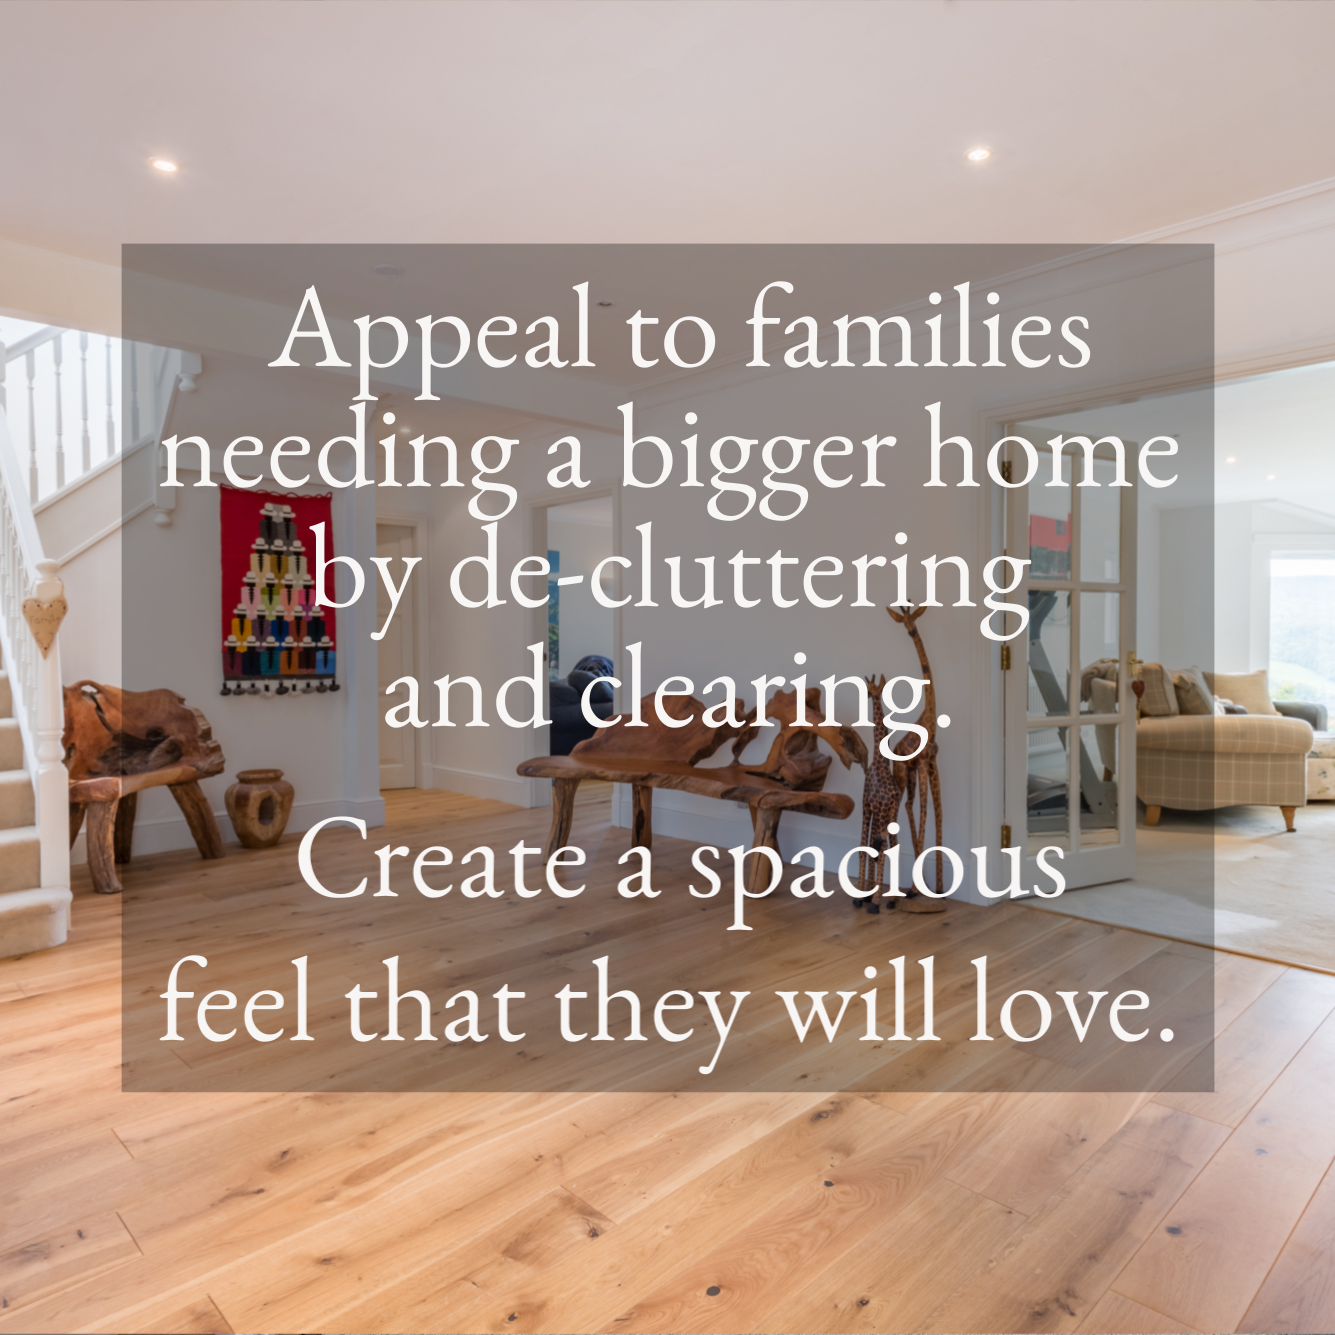 tg12-appeal-to-families-needing-a-bigger-home-